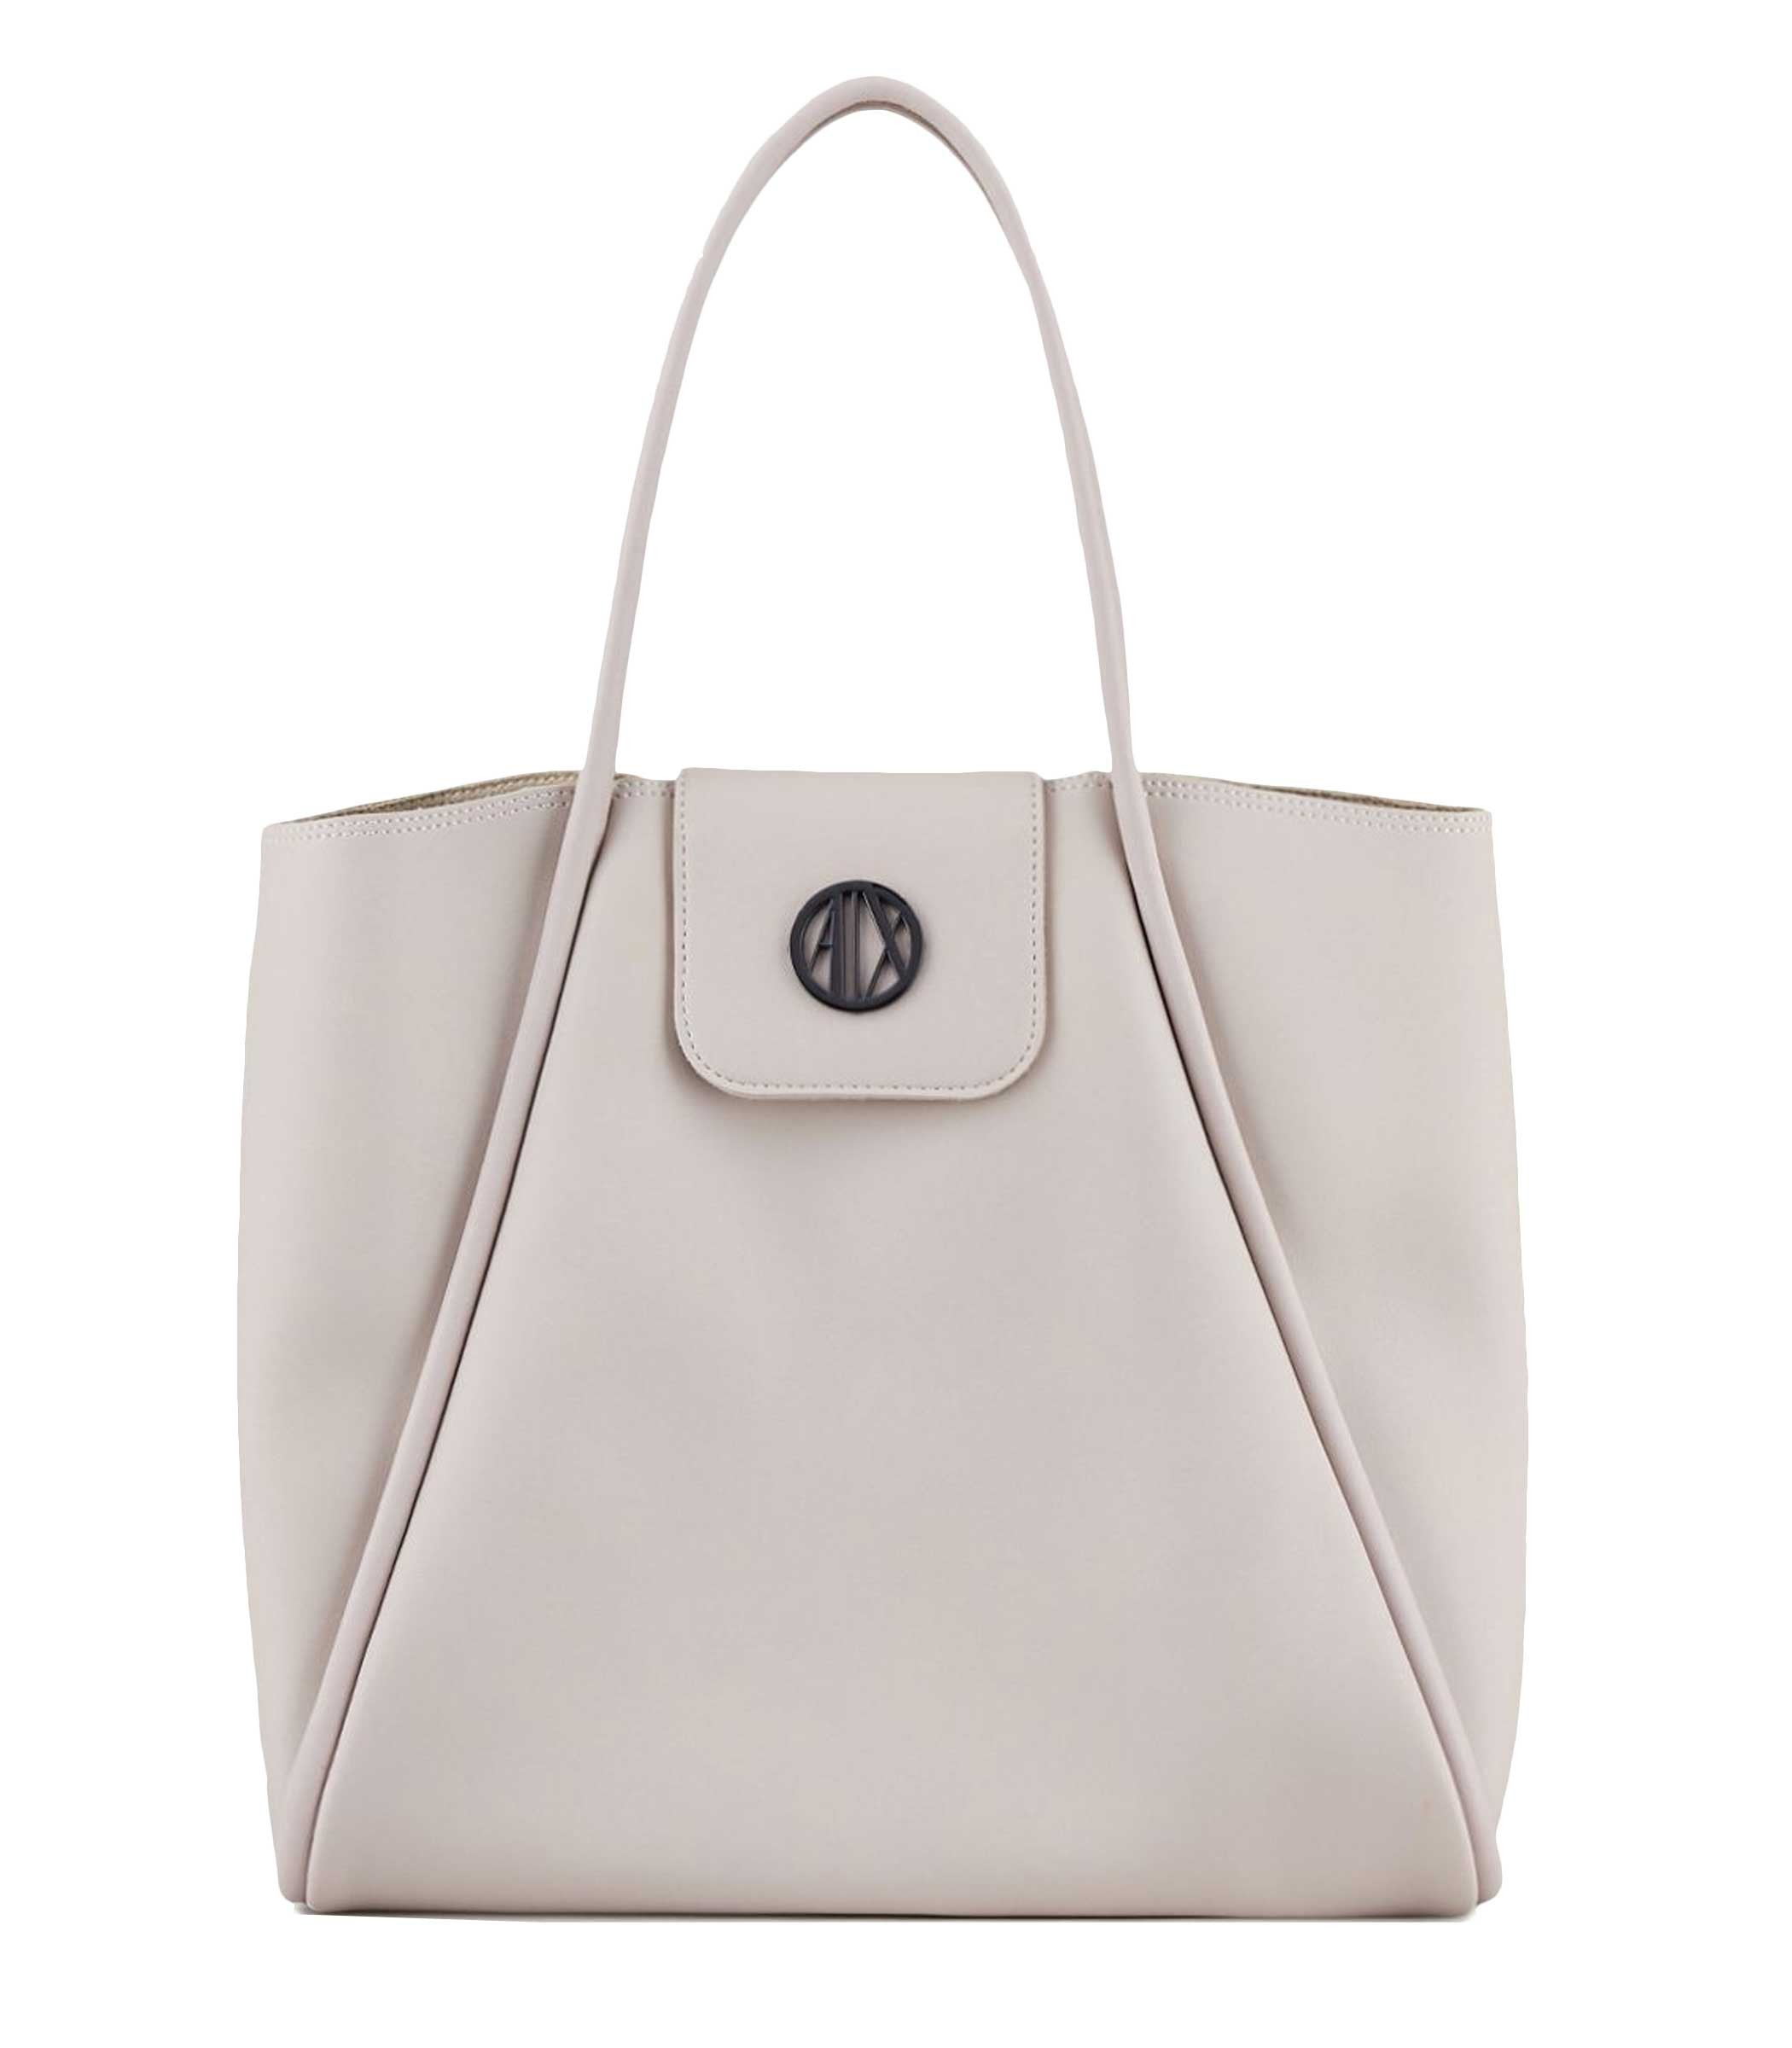 Borsa Armani 9p862 Media Exchange Da Bag Donna Shopping Rif942557 rdBeCxoW